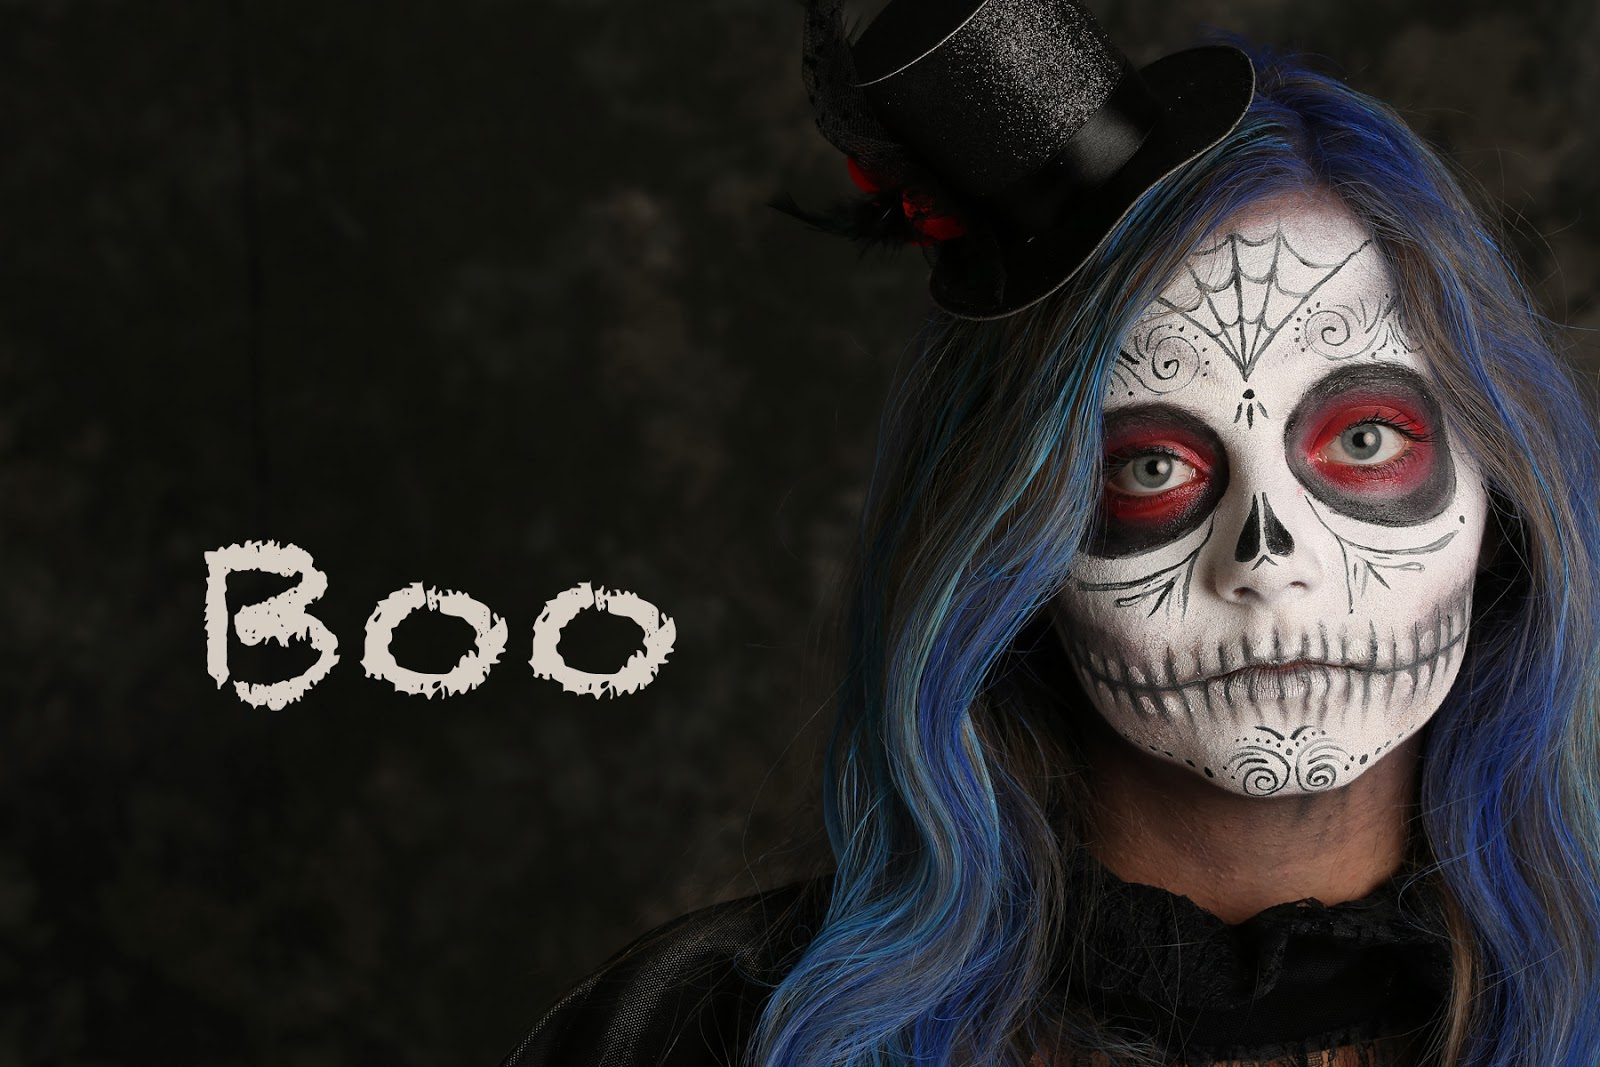 Boo6383 kansas city aupairs happy halloween and a scary good night to all